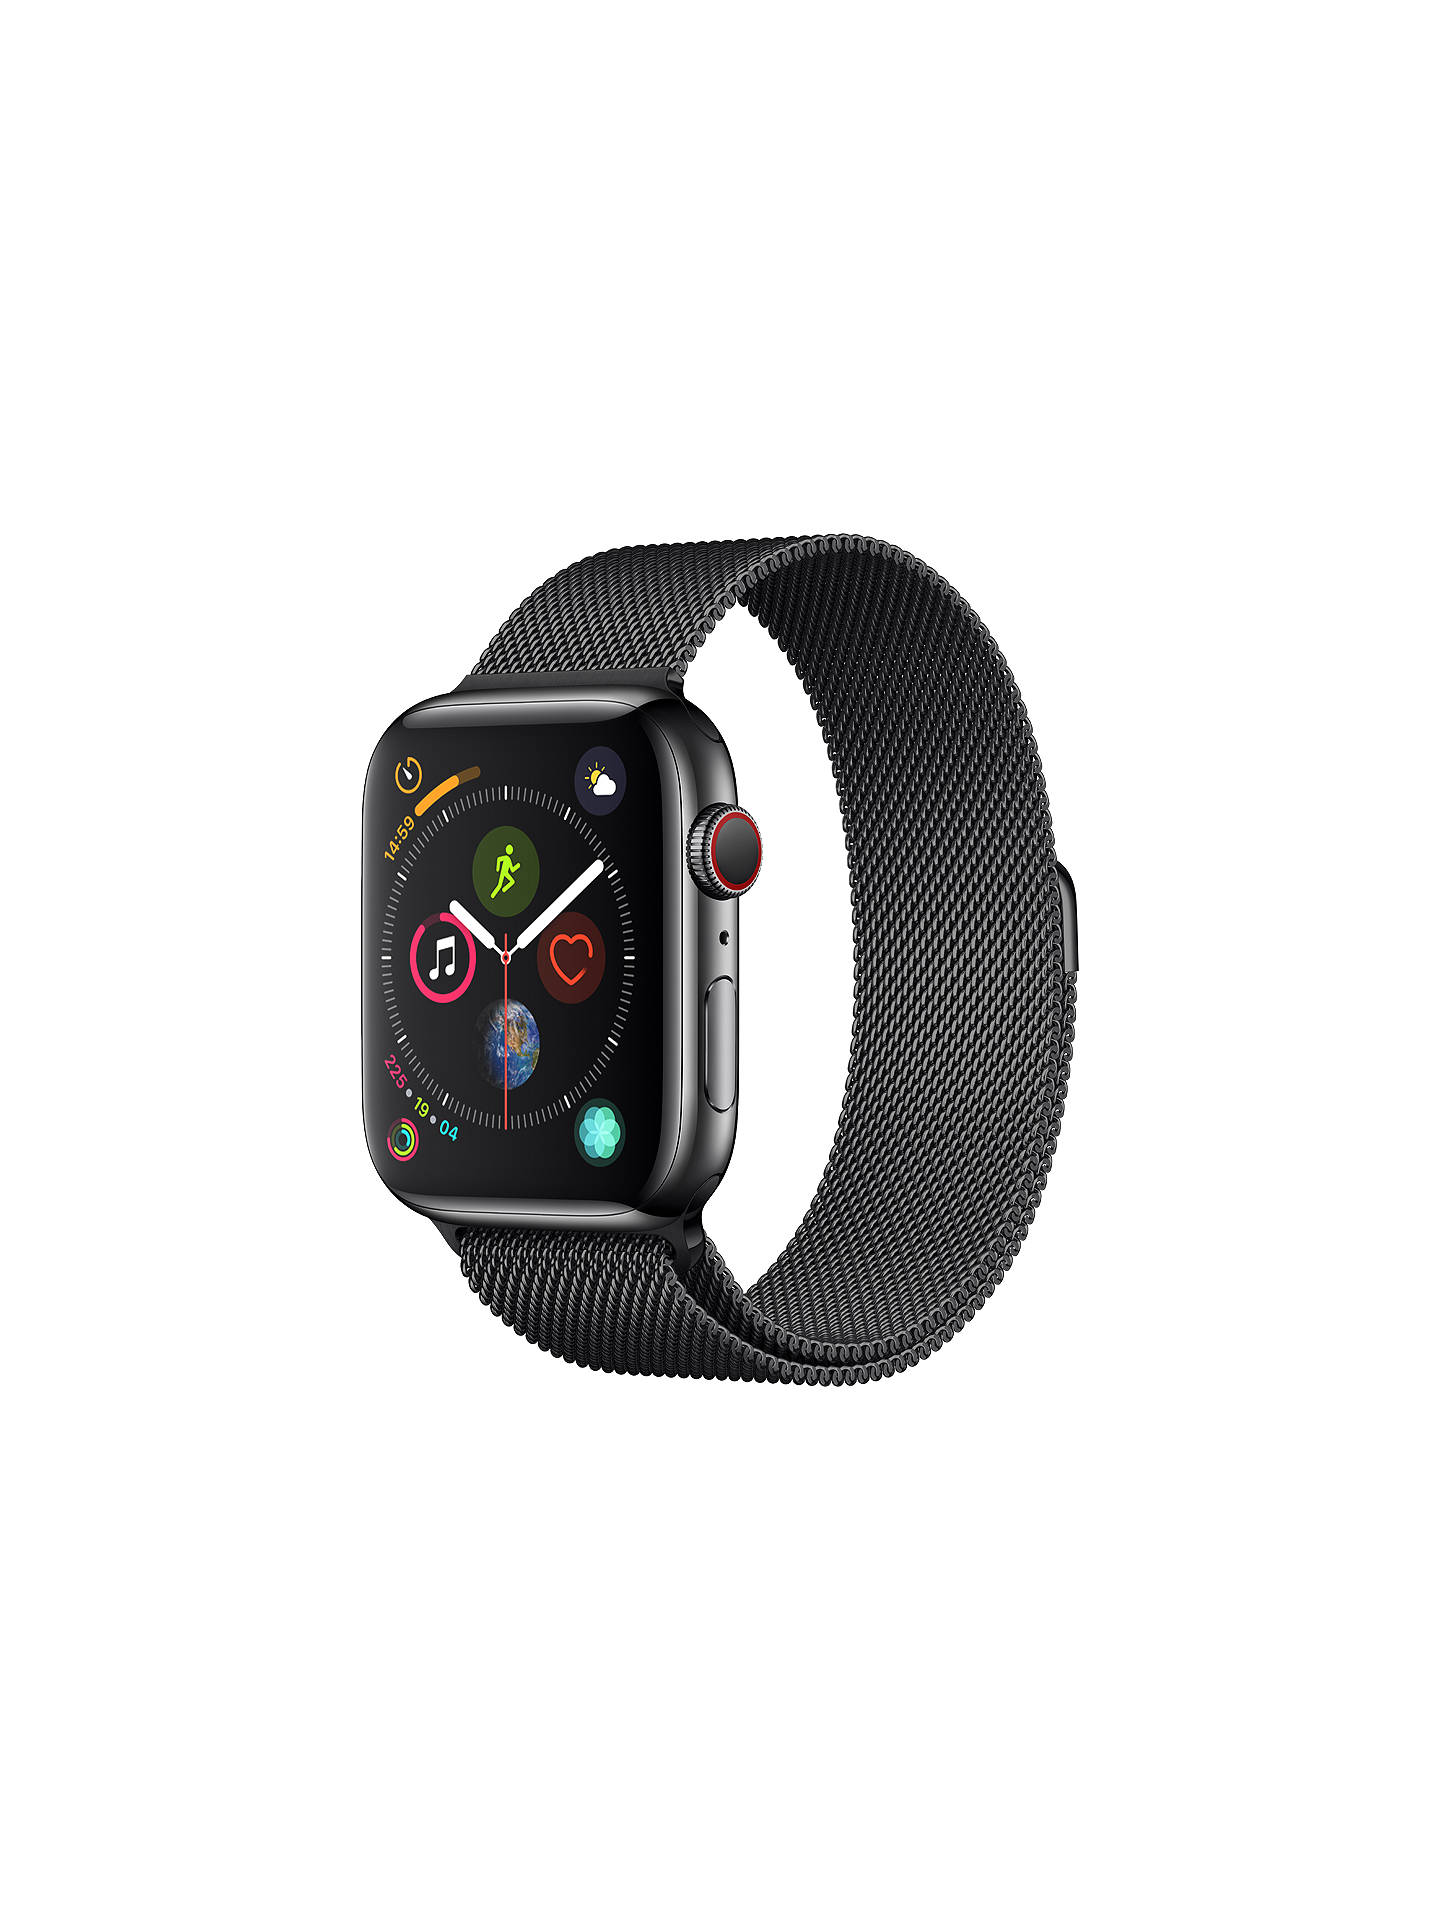 Buy Apple Watch Series 4, GPS and Cellular, 44mm Stainless Steel Case with Milanese Loop, Black Online at johnlewis.com